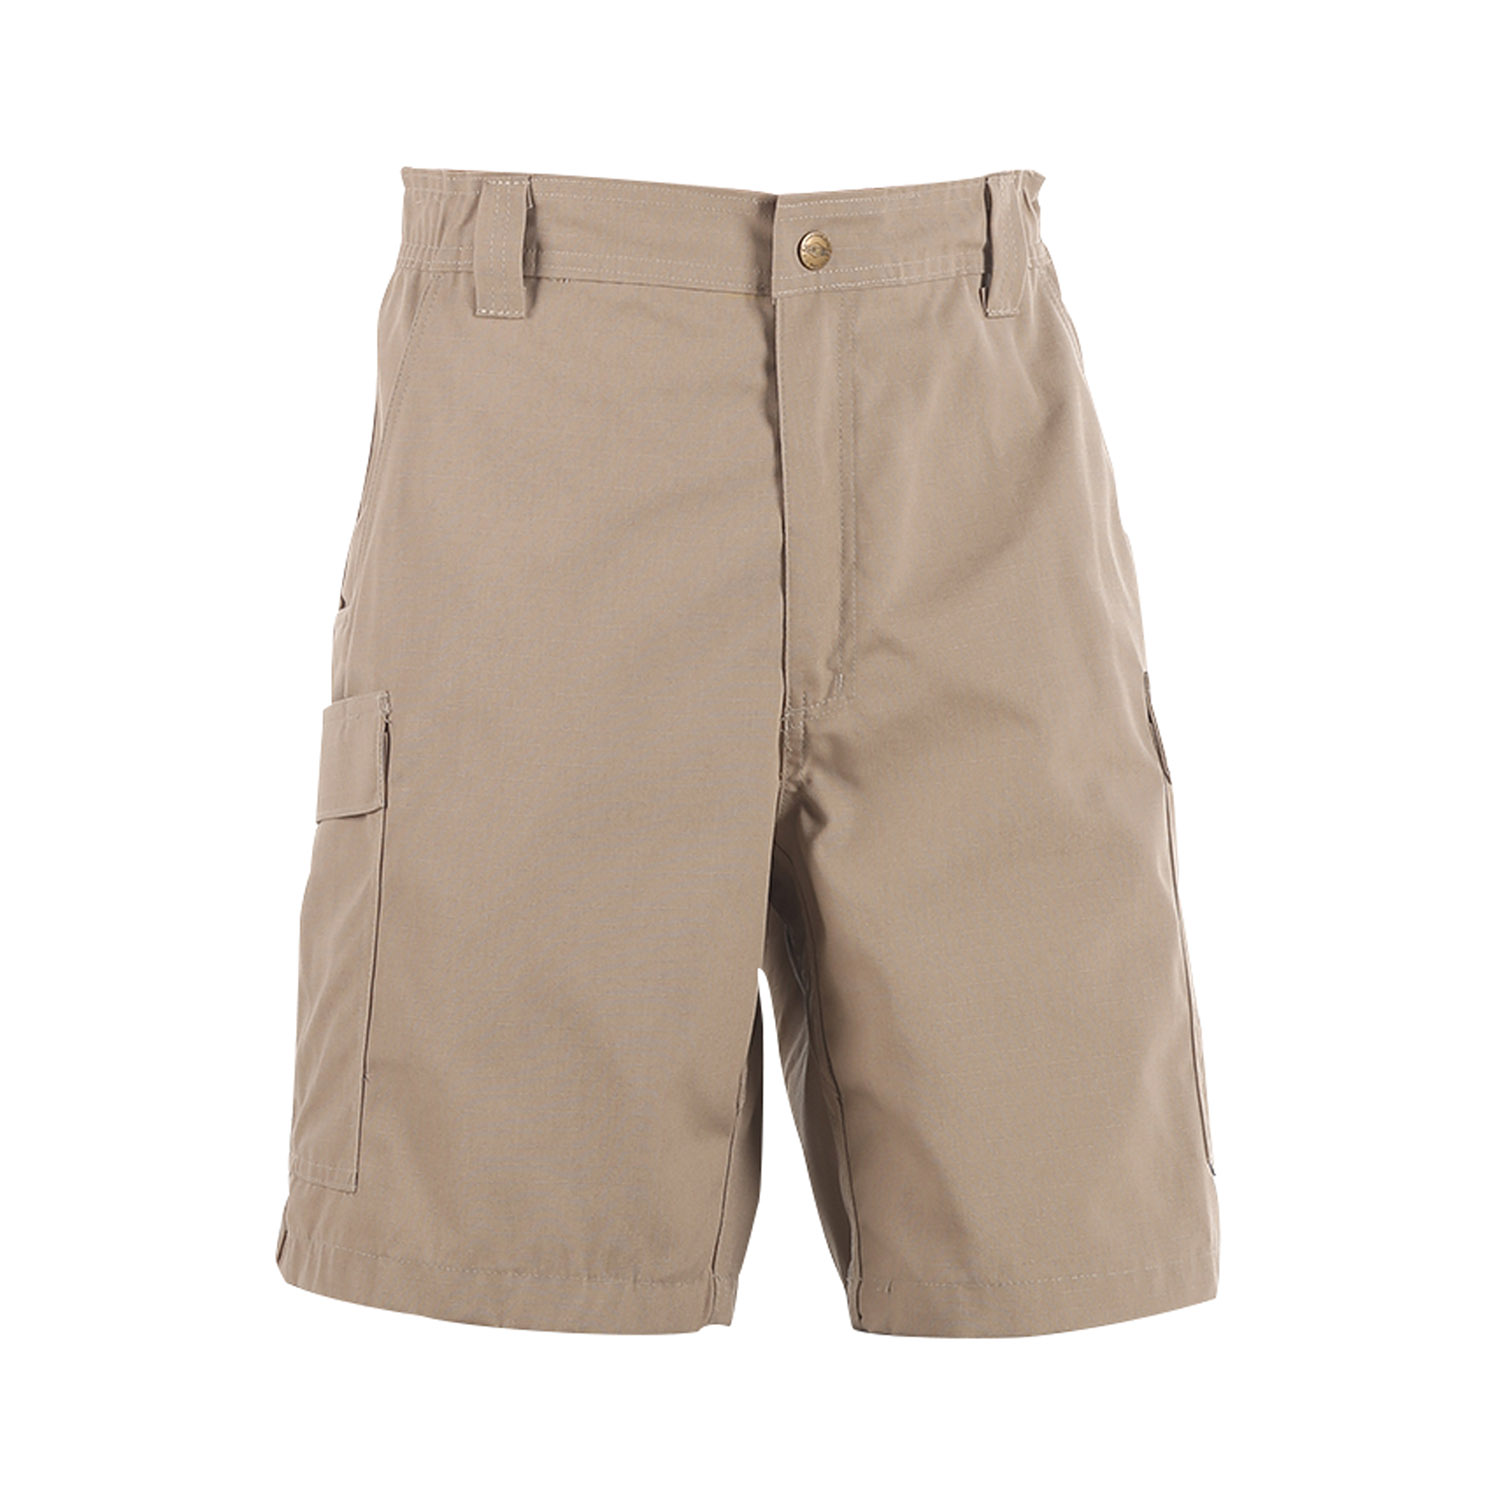 Tru-Spec 24-7 Simply Tactical Cargo Shorts